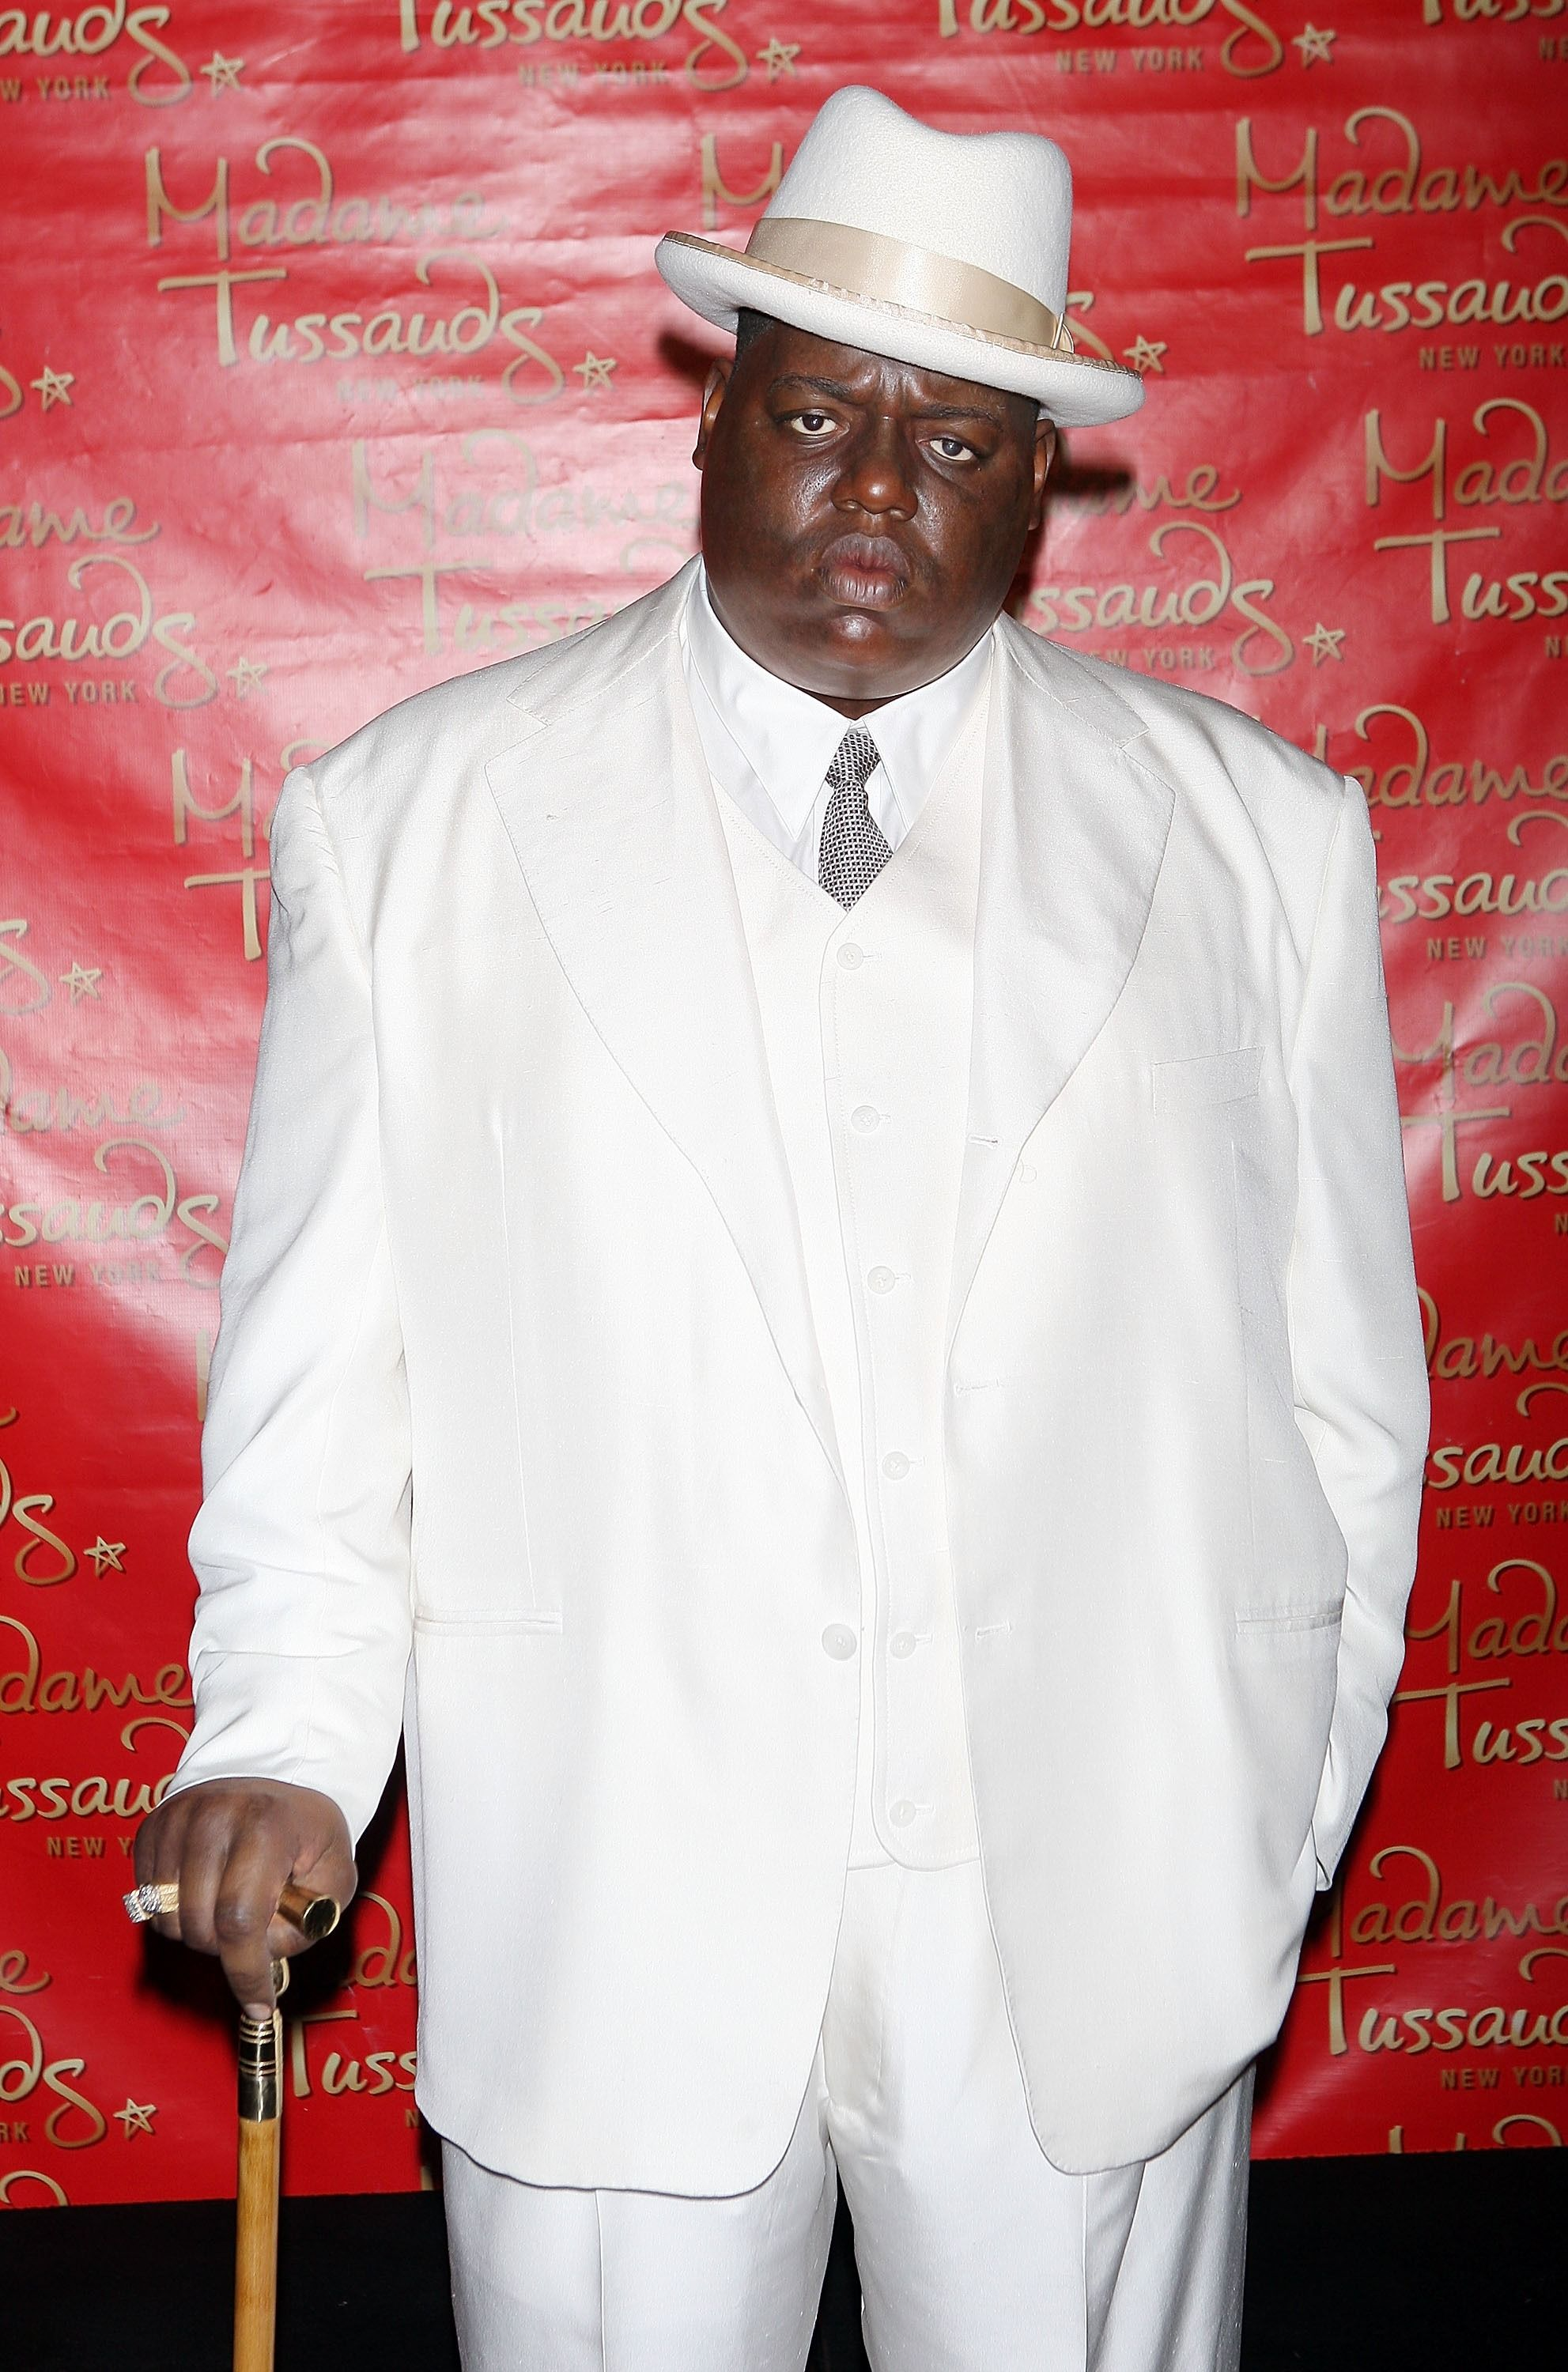 A wax figure of Christopher 'Biggie Smalls' Wallace on display in Times Square on October 25, 2007 in New York. | Photo: Getty Images